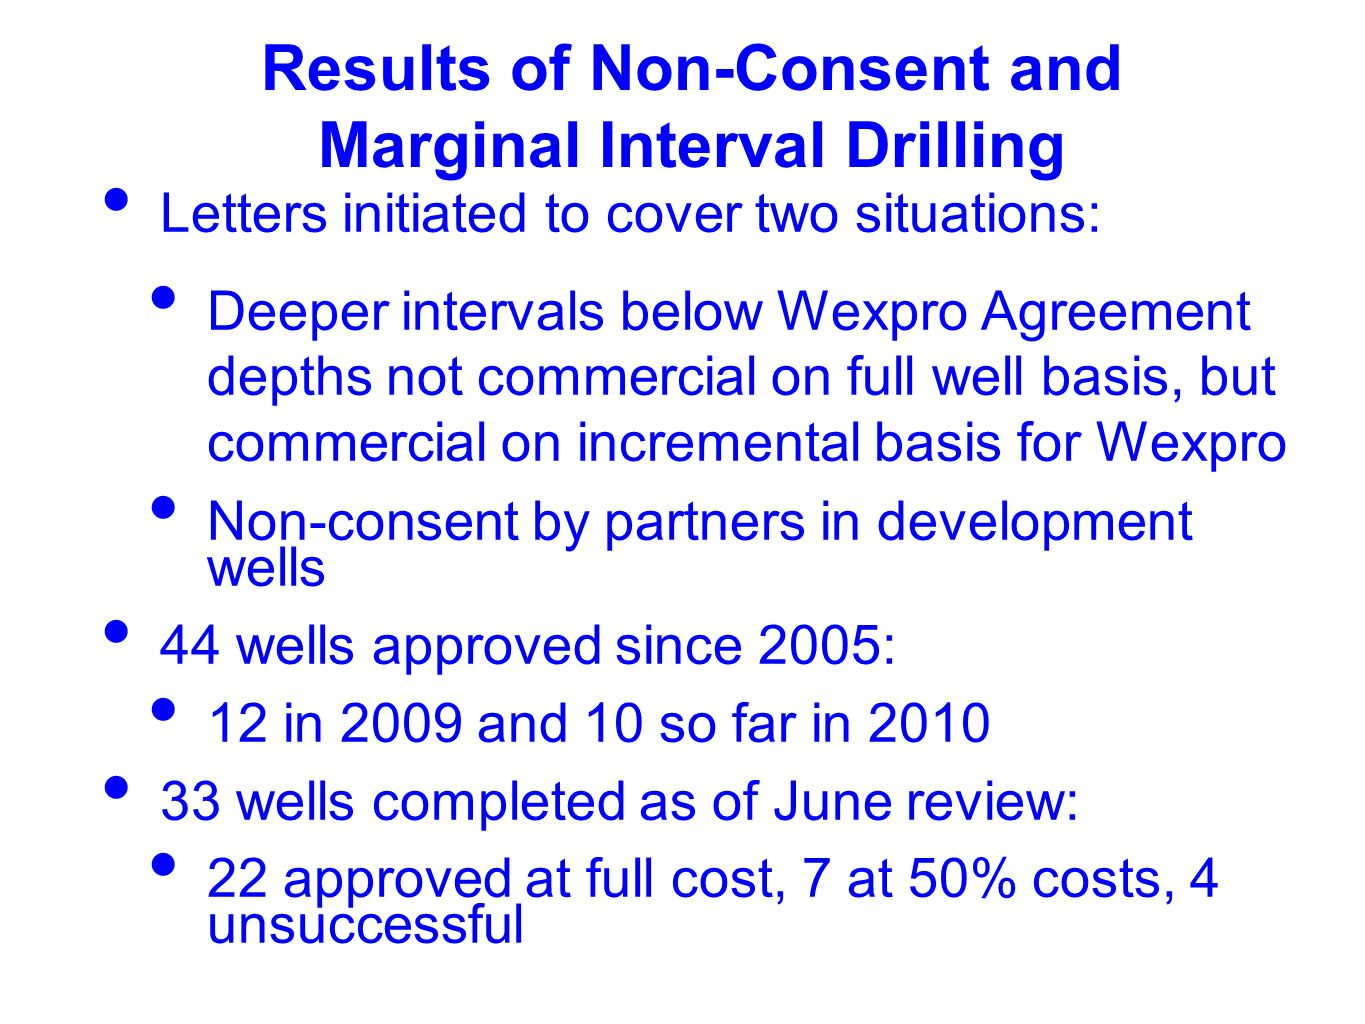 Results of Non-Consent and Marginal Interval Drilling Letters initiated to cover two situations: Deeper intervals below Wexpro Agreement depths not commercial on full well basis, but commercial on incremental basis for Wexpro Non-consent by partners in development wells 44 wells approved since 2005: 12 in 2009 and 10 so far in 2010 33 wells completed as of June review: 22 approved at full cost, 7 at 50% costs, 4 unsuccessful